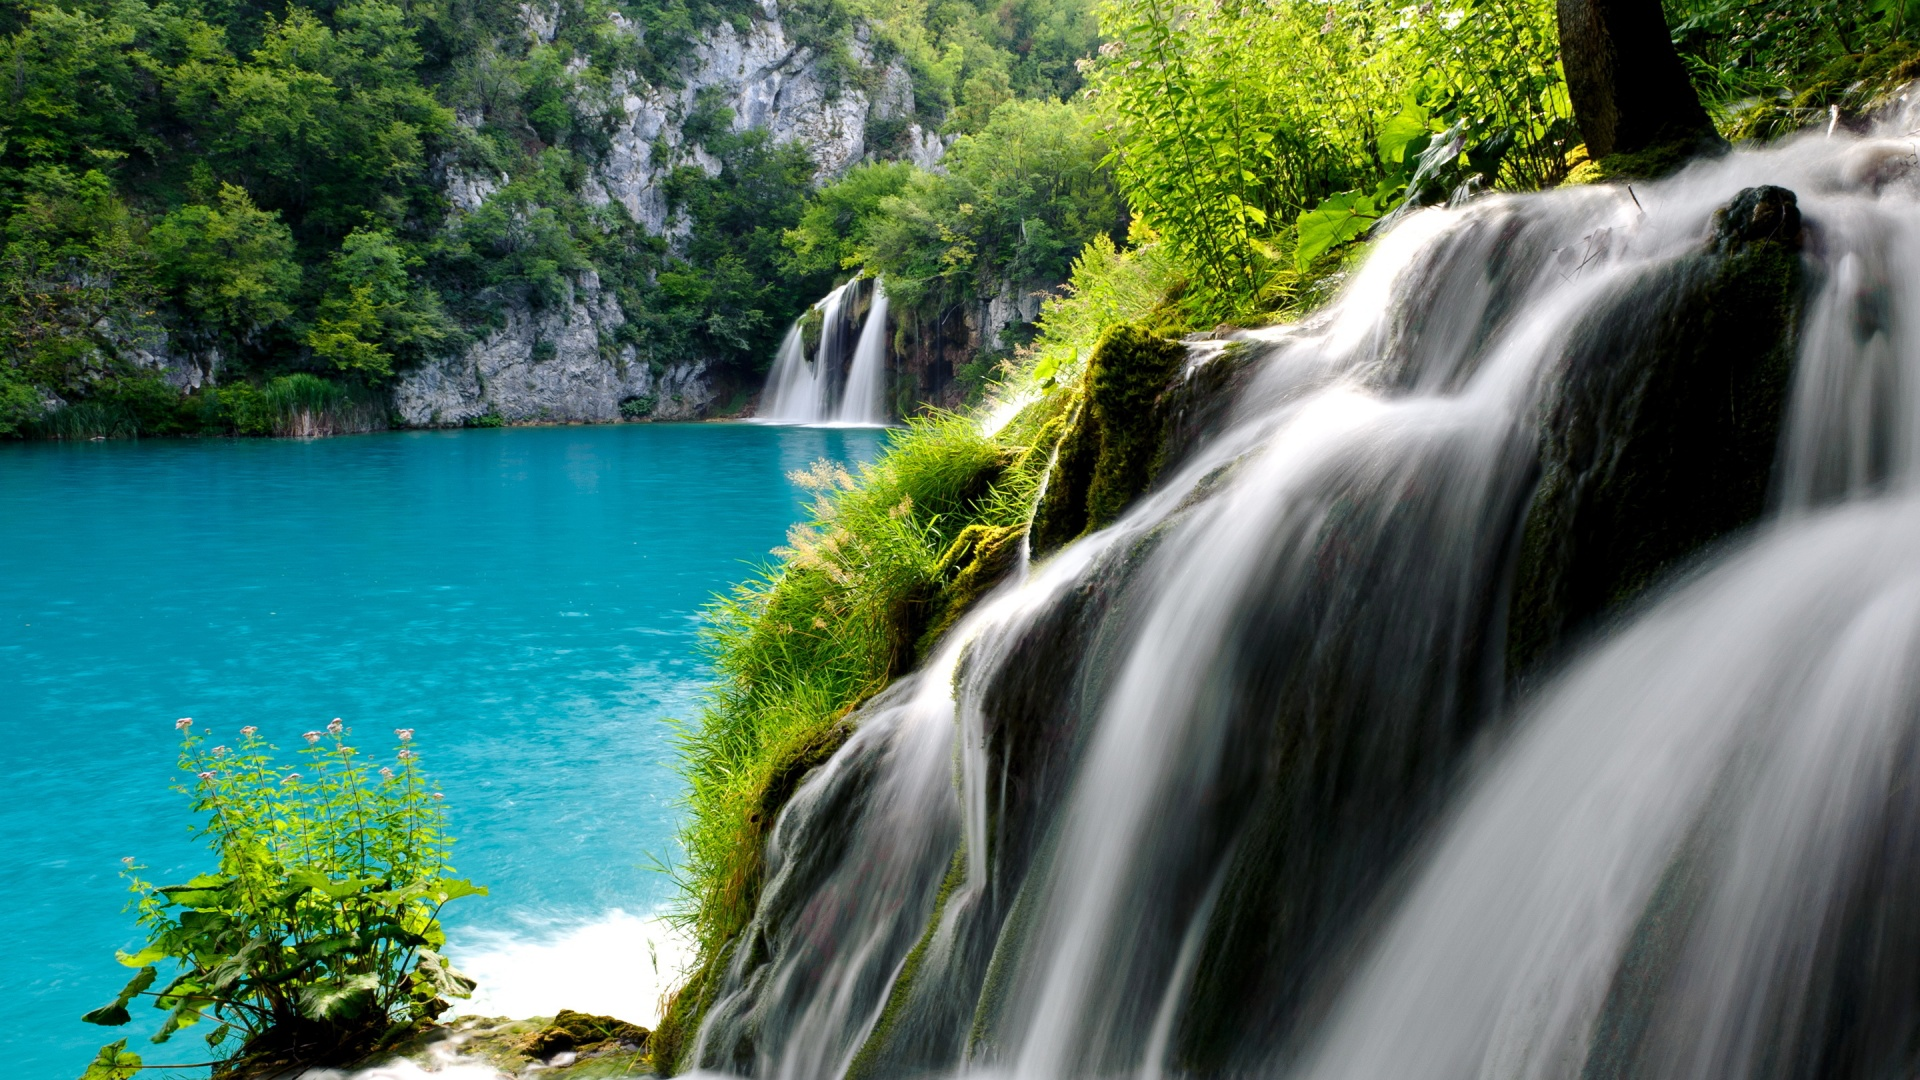 1920x1080 Wallpaper: Croatia Wallpapers